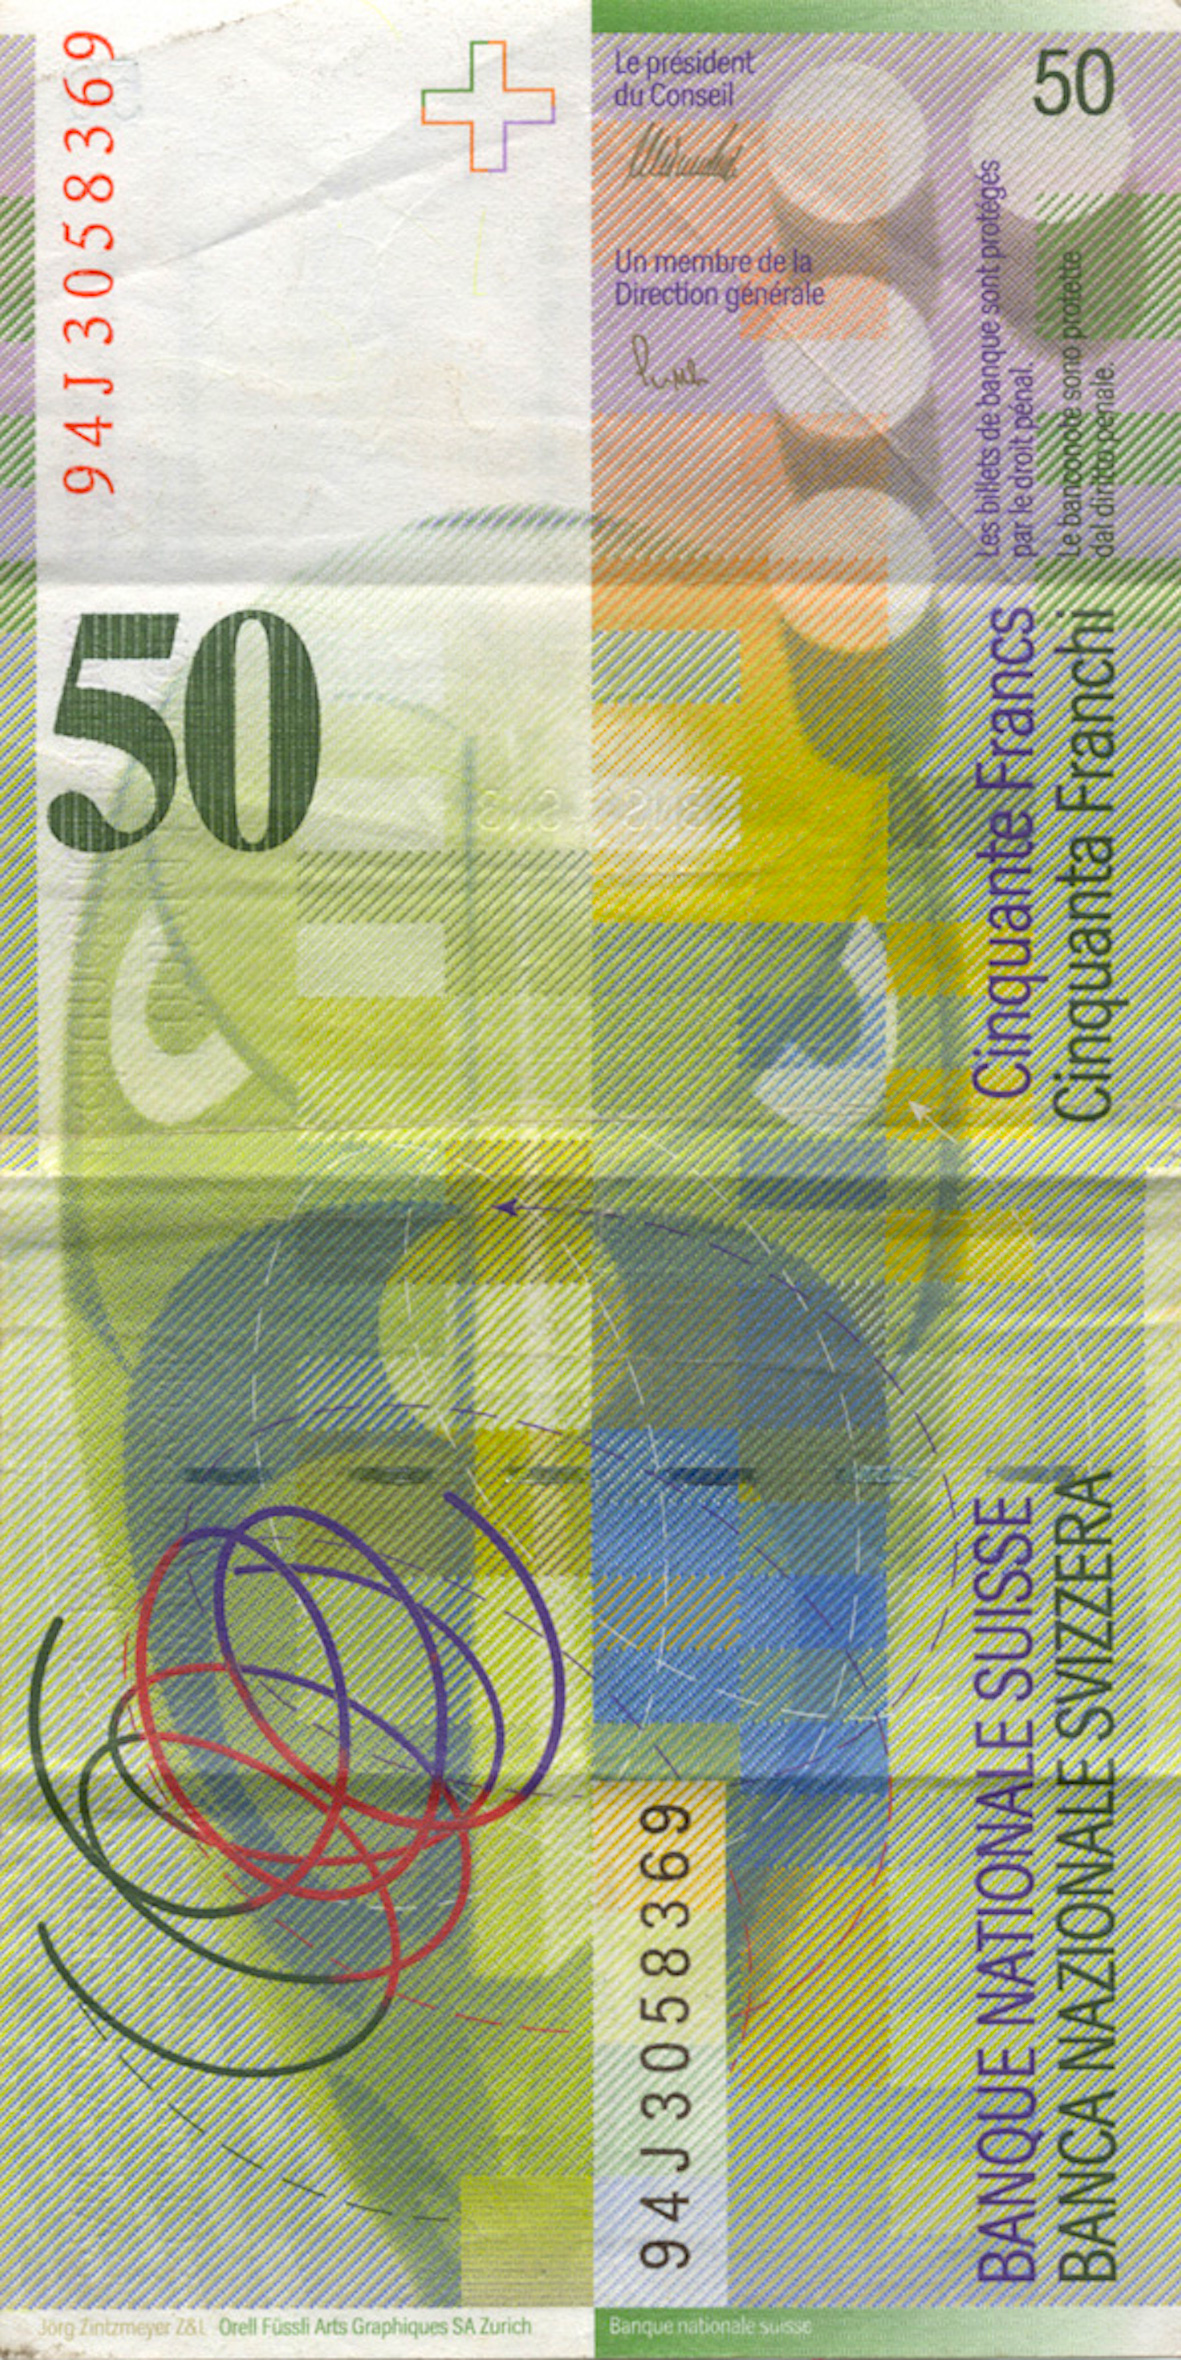 Swiss Confederation, 50 Franks 1980, 8th banknote series, in circulation since 1995 (reverse)